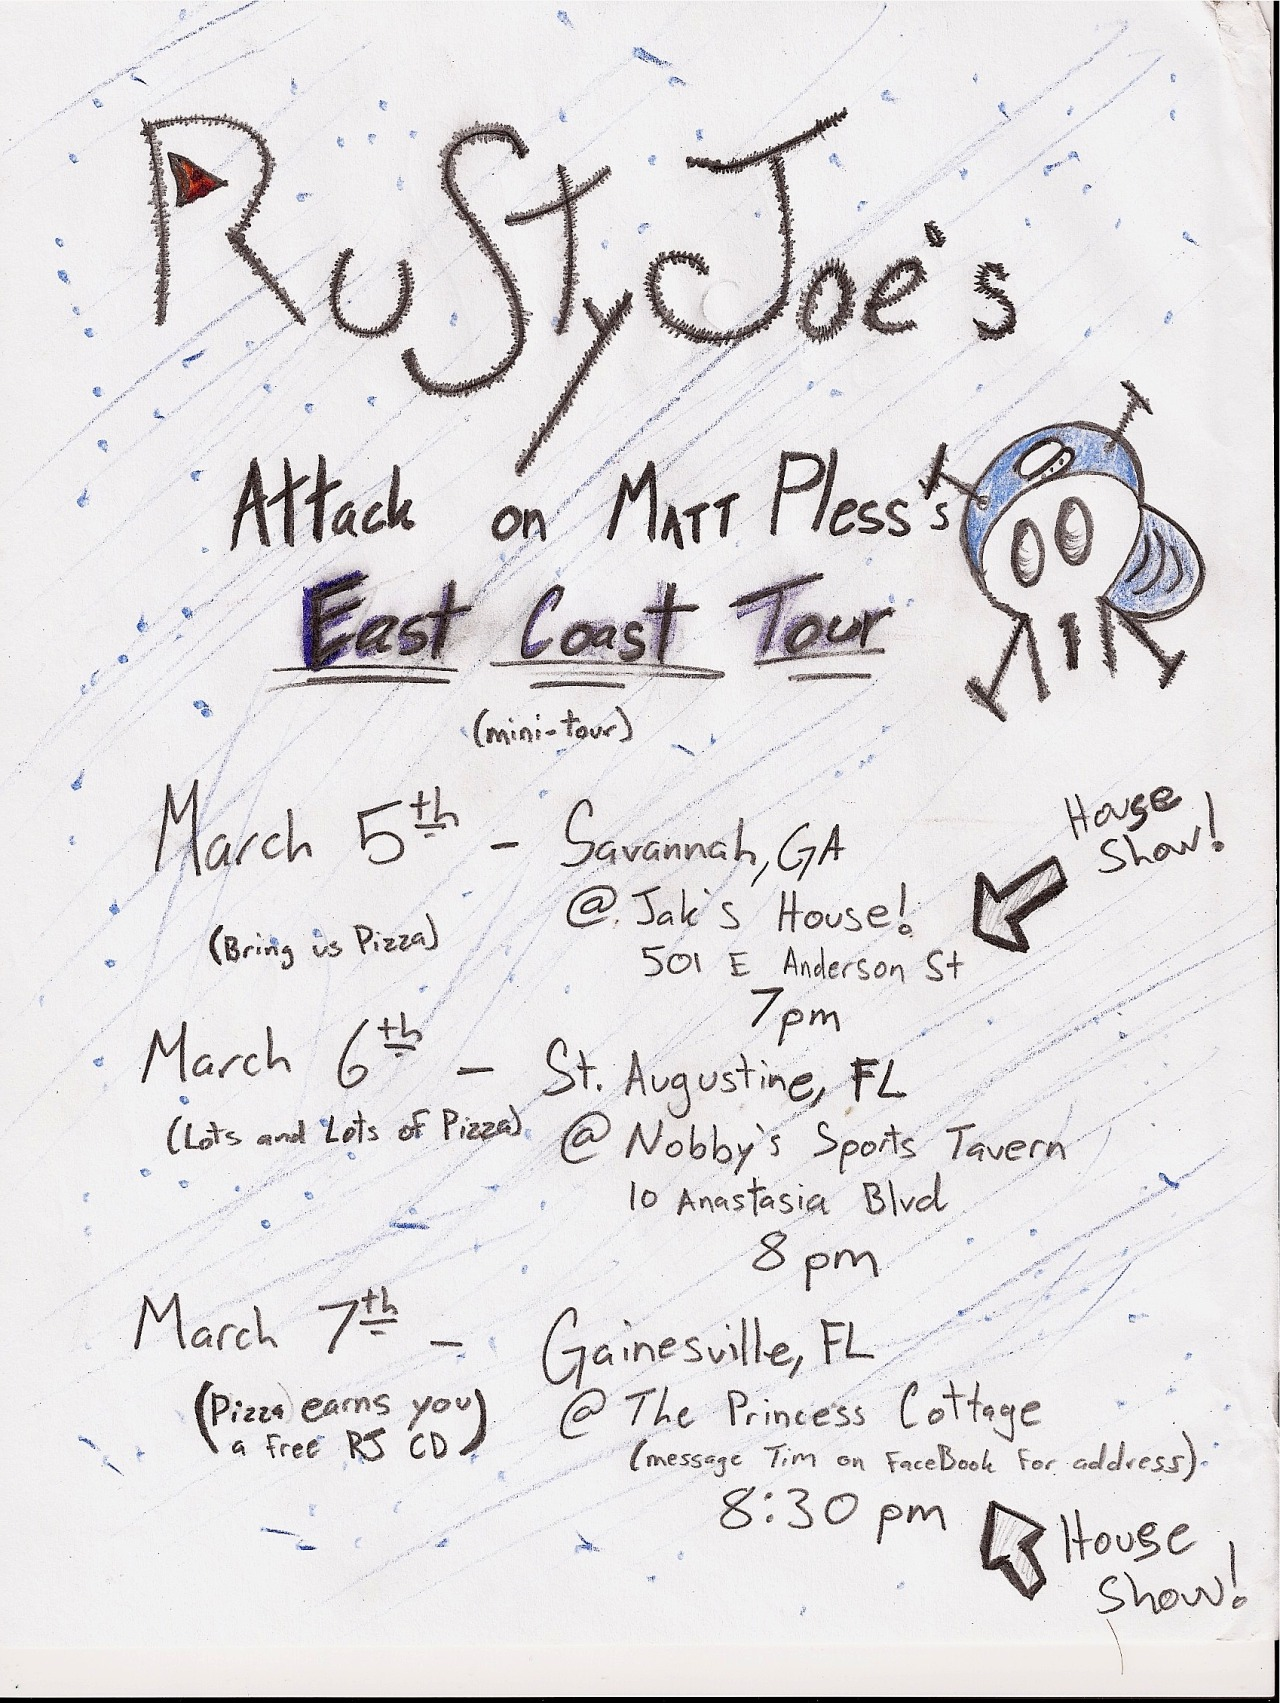 treebomb :     Hey everyone! Rusty Joe is going on a mini tour next week with Matt Pless! There's going to be a lot of high fives given in Savannah, GA! Stinky hugs in St. Augustine, FL! And the best Frisbee game of all time will be played in Gainesville, FL! Come out if you can and please reblog this post to make sure that all punx can be a part of this wonderful tour!     PS. On a side note, if anyone that's going happens to have Pokemon Black/White (or any other DS pokemon game) I really really want a Squirtle so if you have one I would love to have it :]